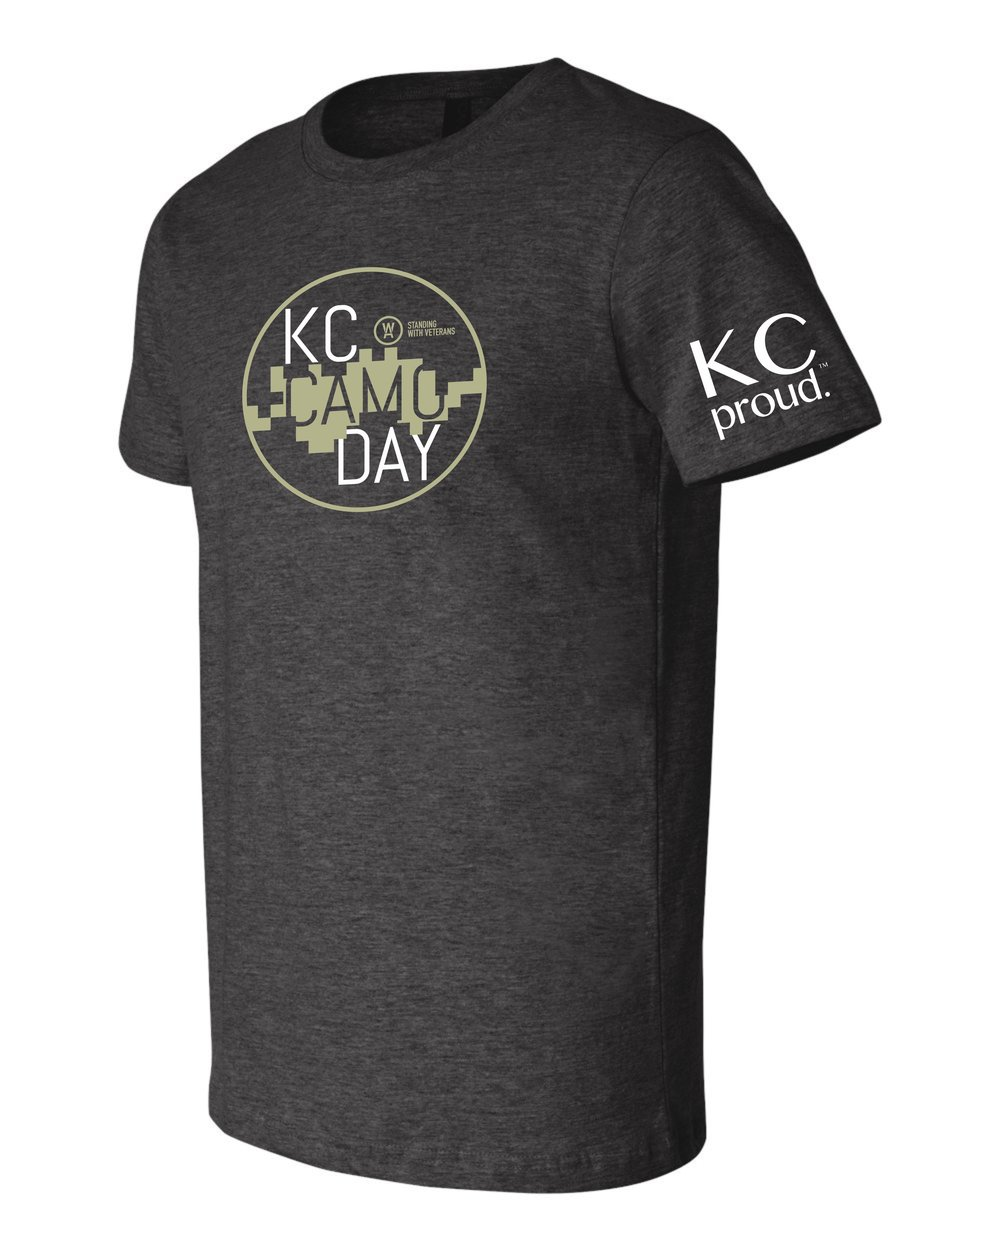 KC Camo Day T-Shirt  $25